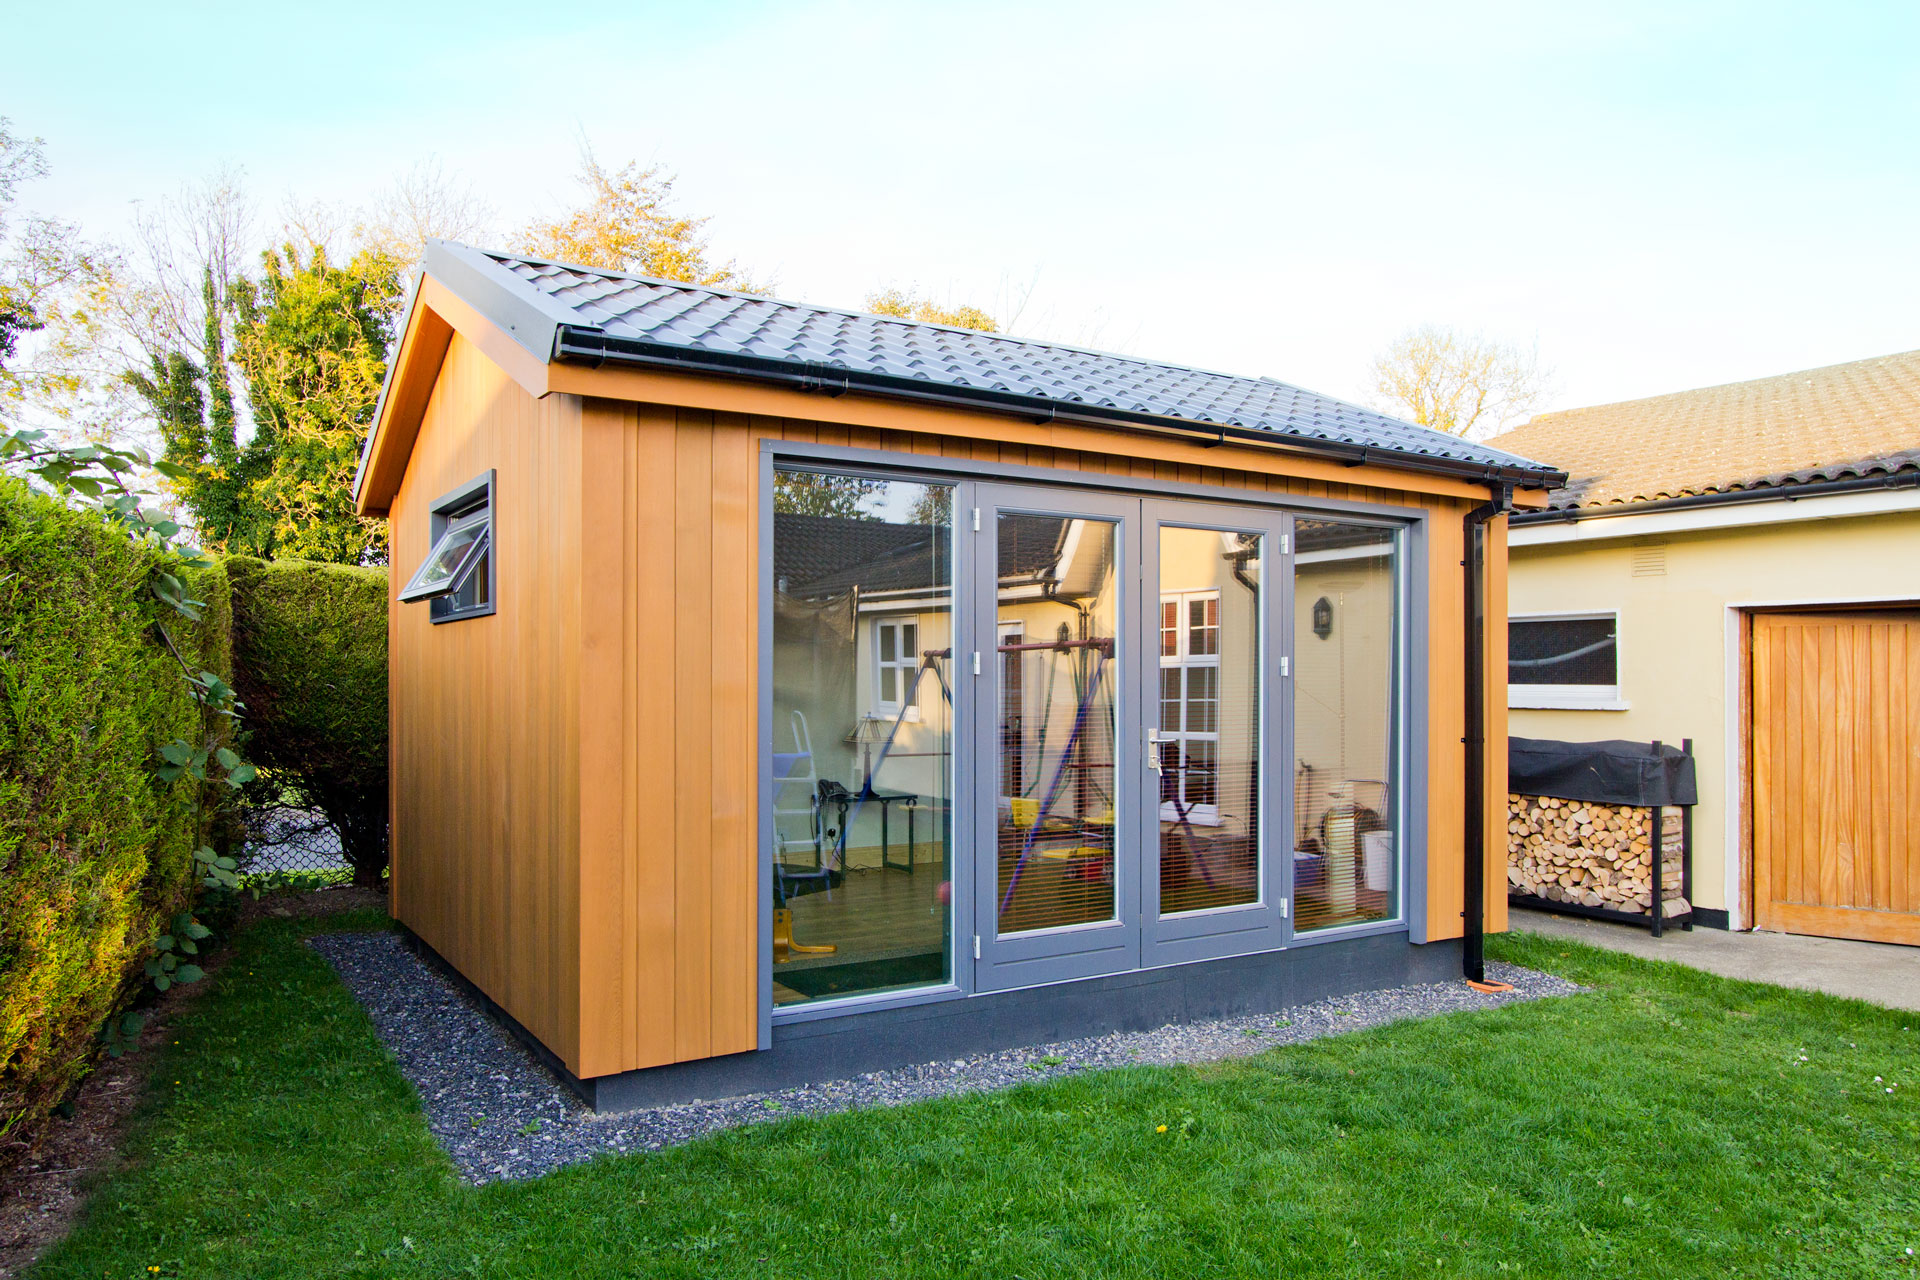 Office pods ideas gallery garden office ideas gallery for Cheap garden office buildings